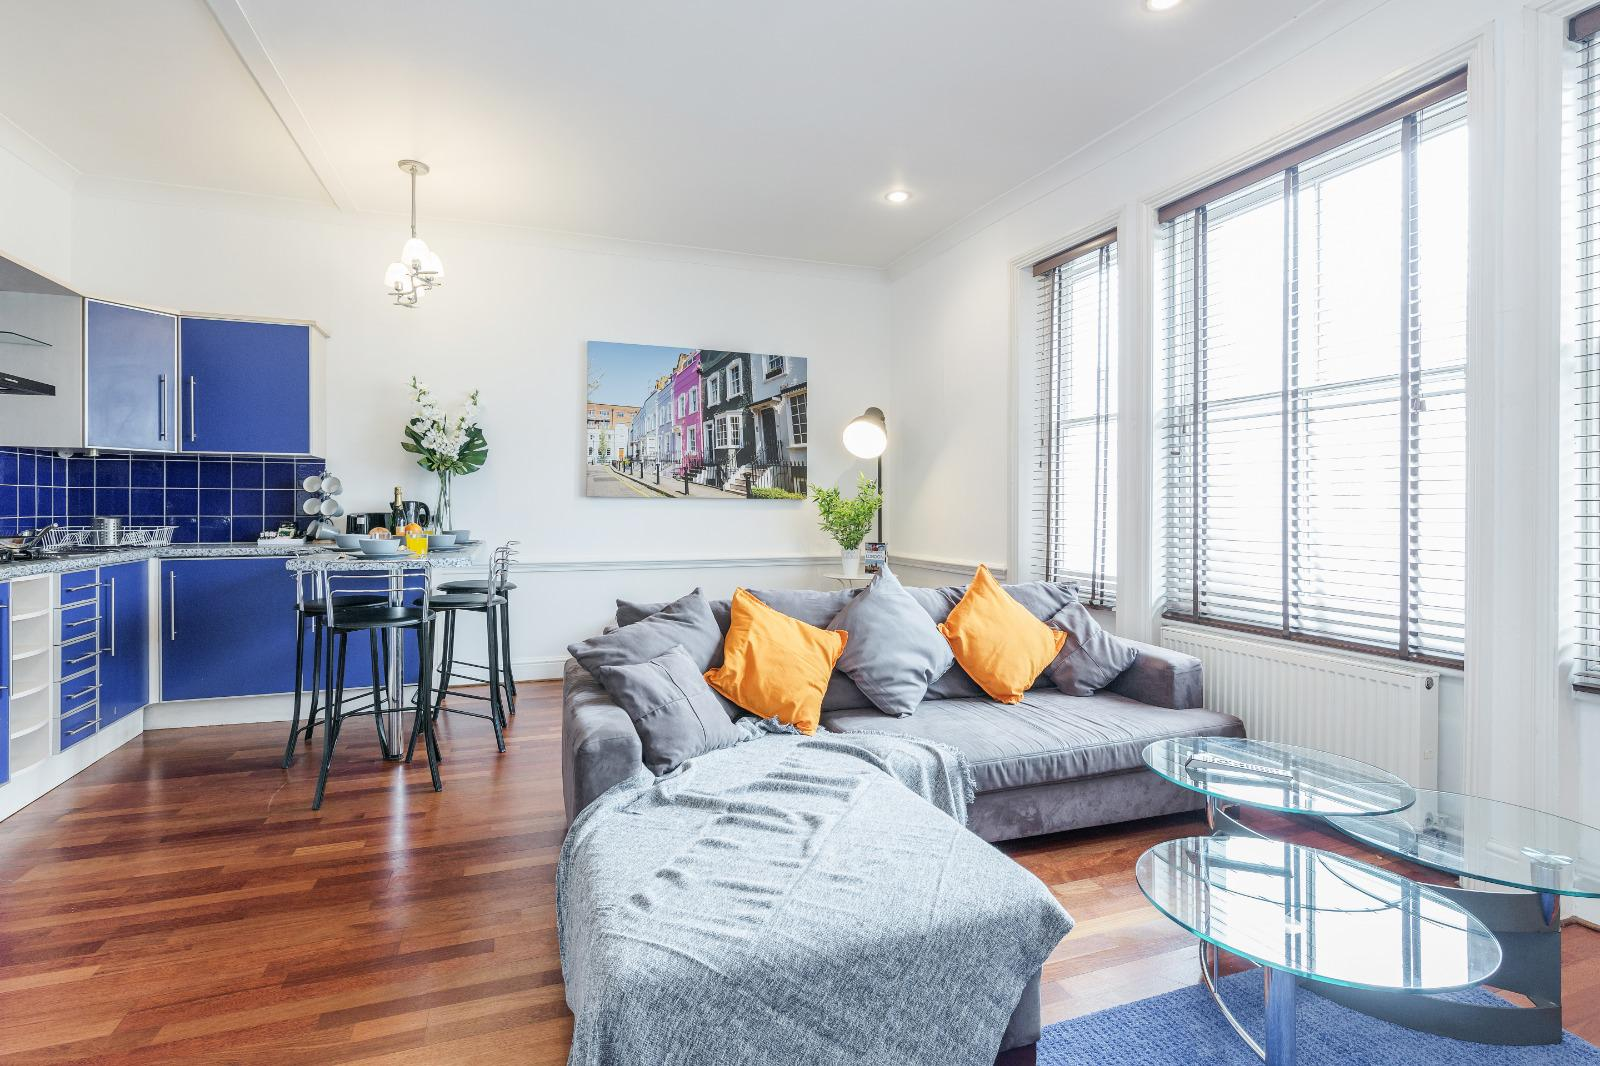 Open plan space at Clanricarde Gardens Apartment, Bayswater, London